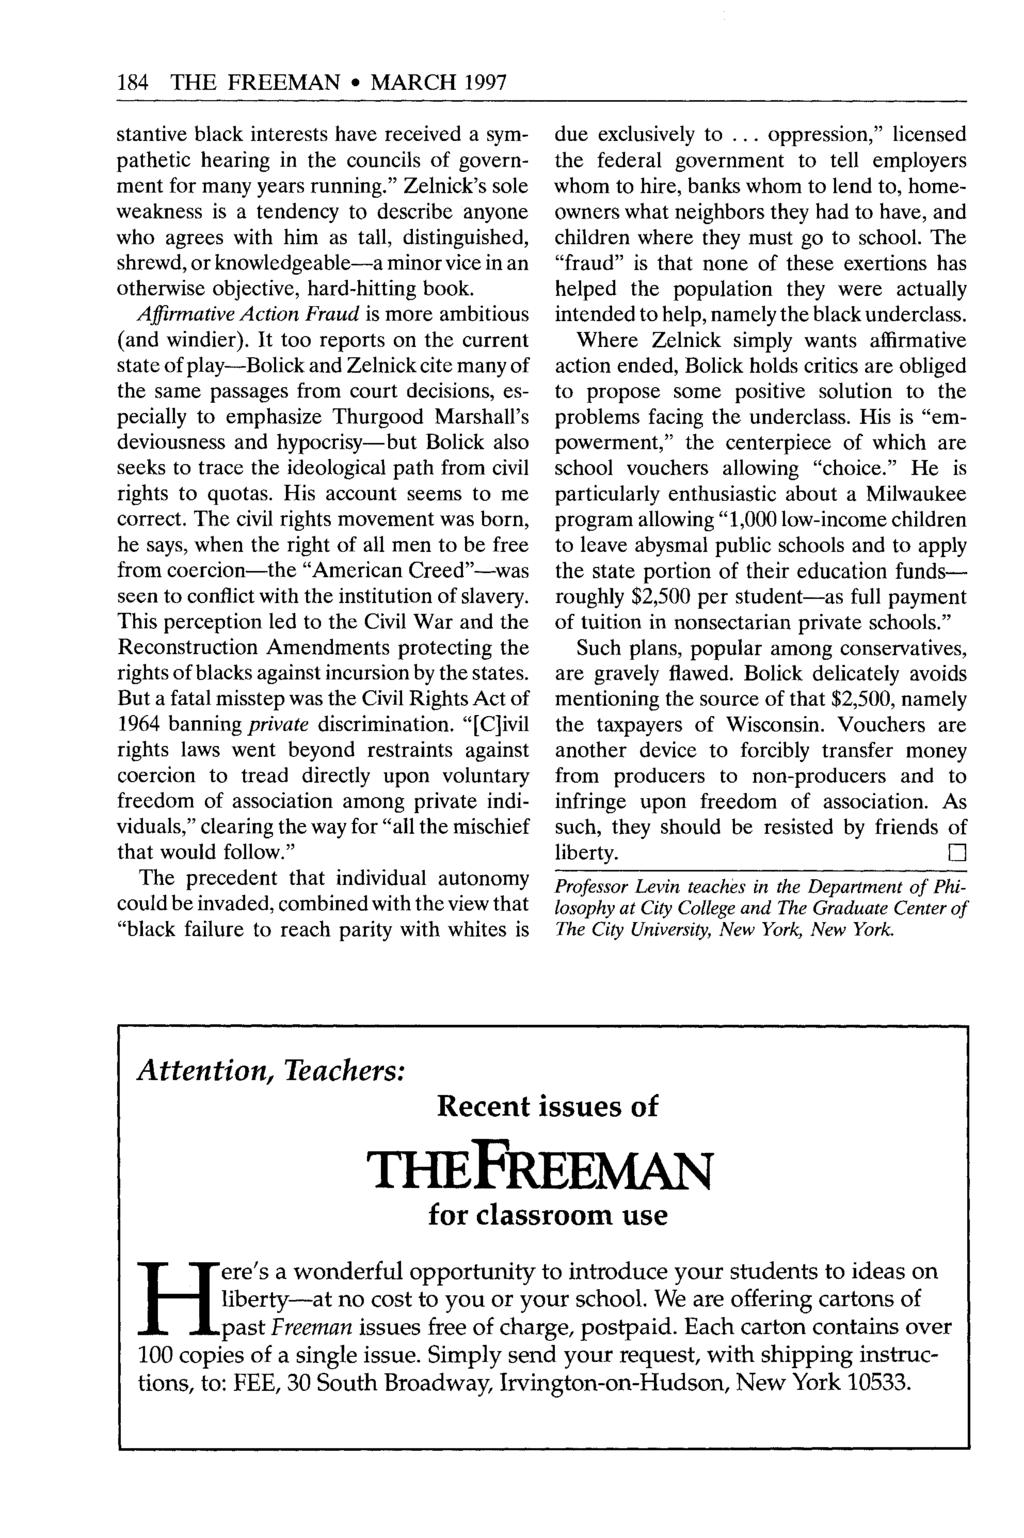 184 THE FREEMAN MARCH 1997 stantive black interests have received a sympathetic hearing in the councils of government for many years running.